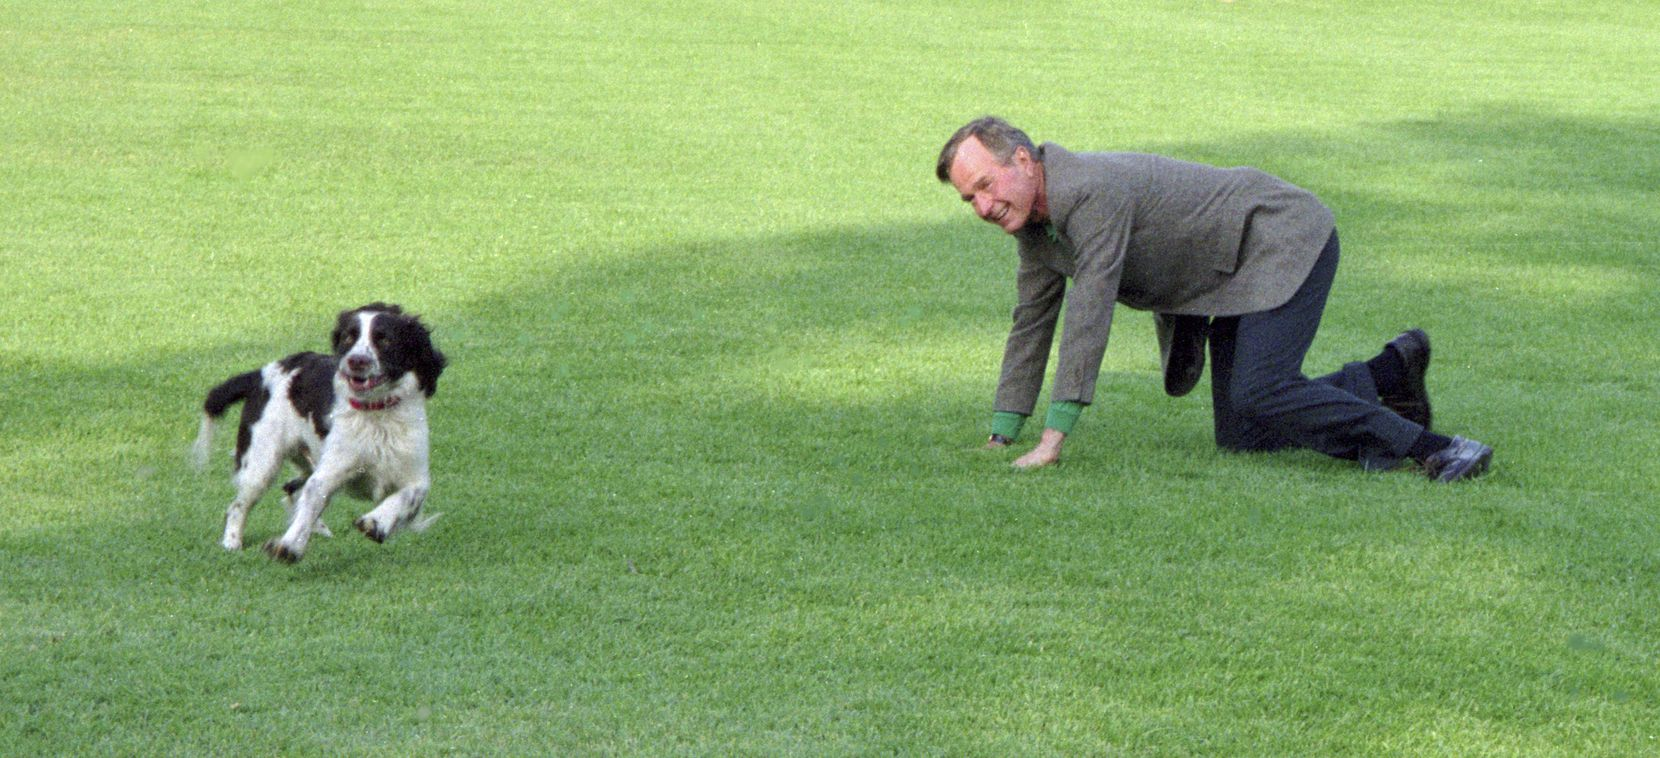 President George H. W. Bush plays with Ranger, an offspring of the couple's well-known dog Millie, on the South Lawn of the White House.